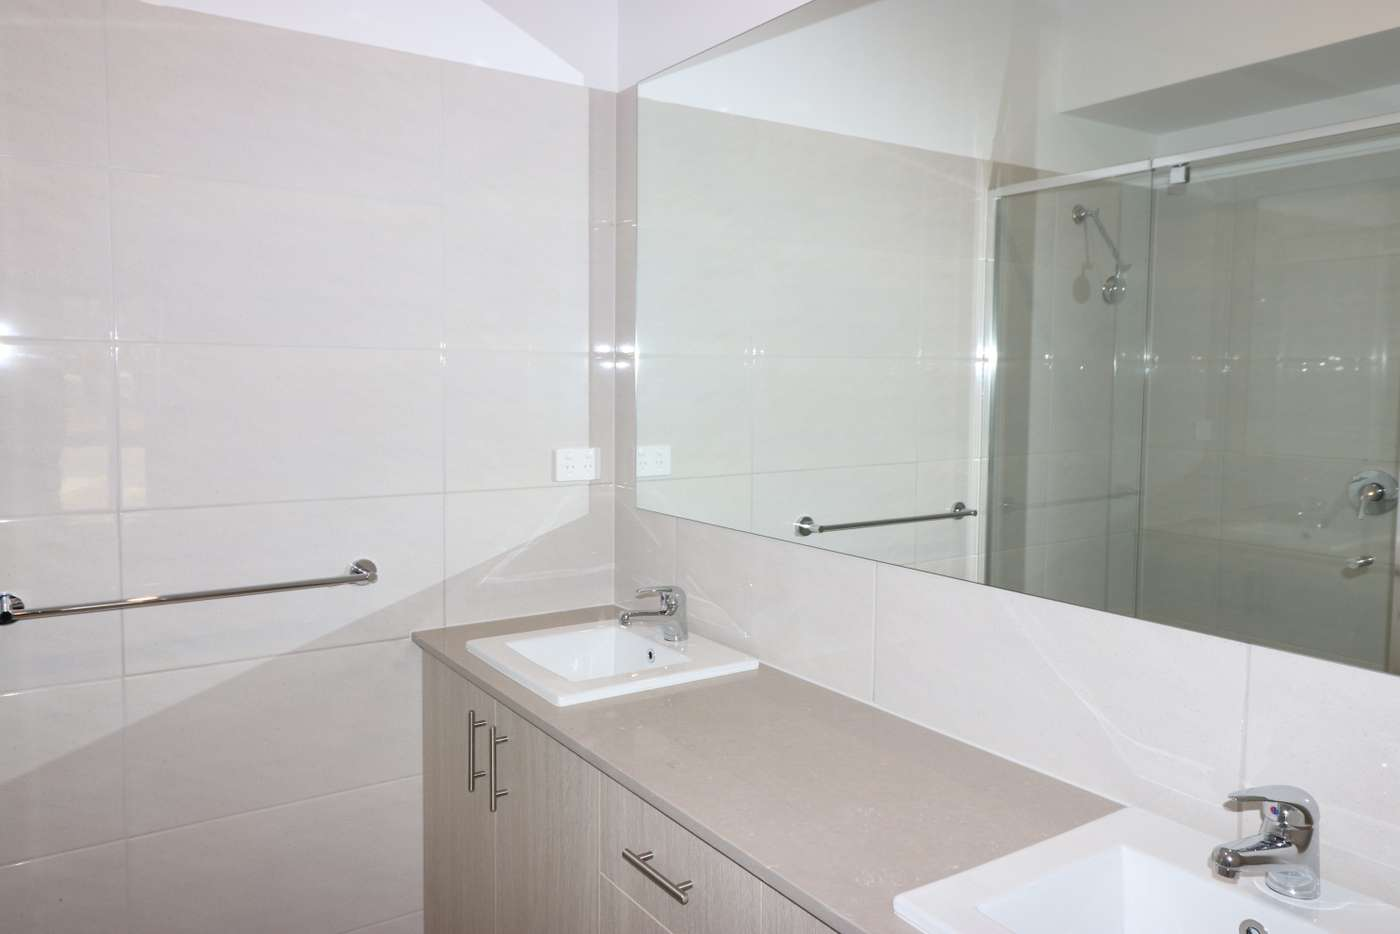 Sixth view of Homely unit listing, 5/24 Melbourne Road, Yea VIC 3717